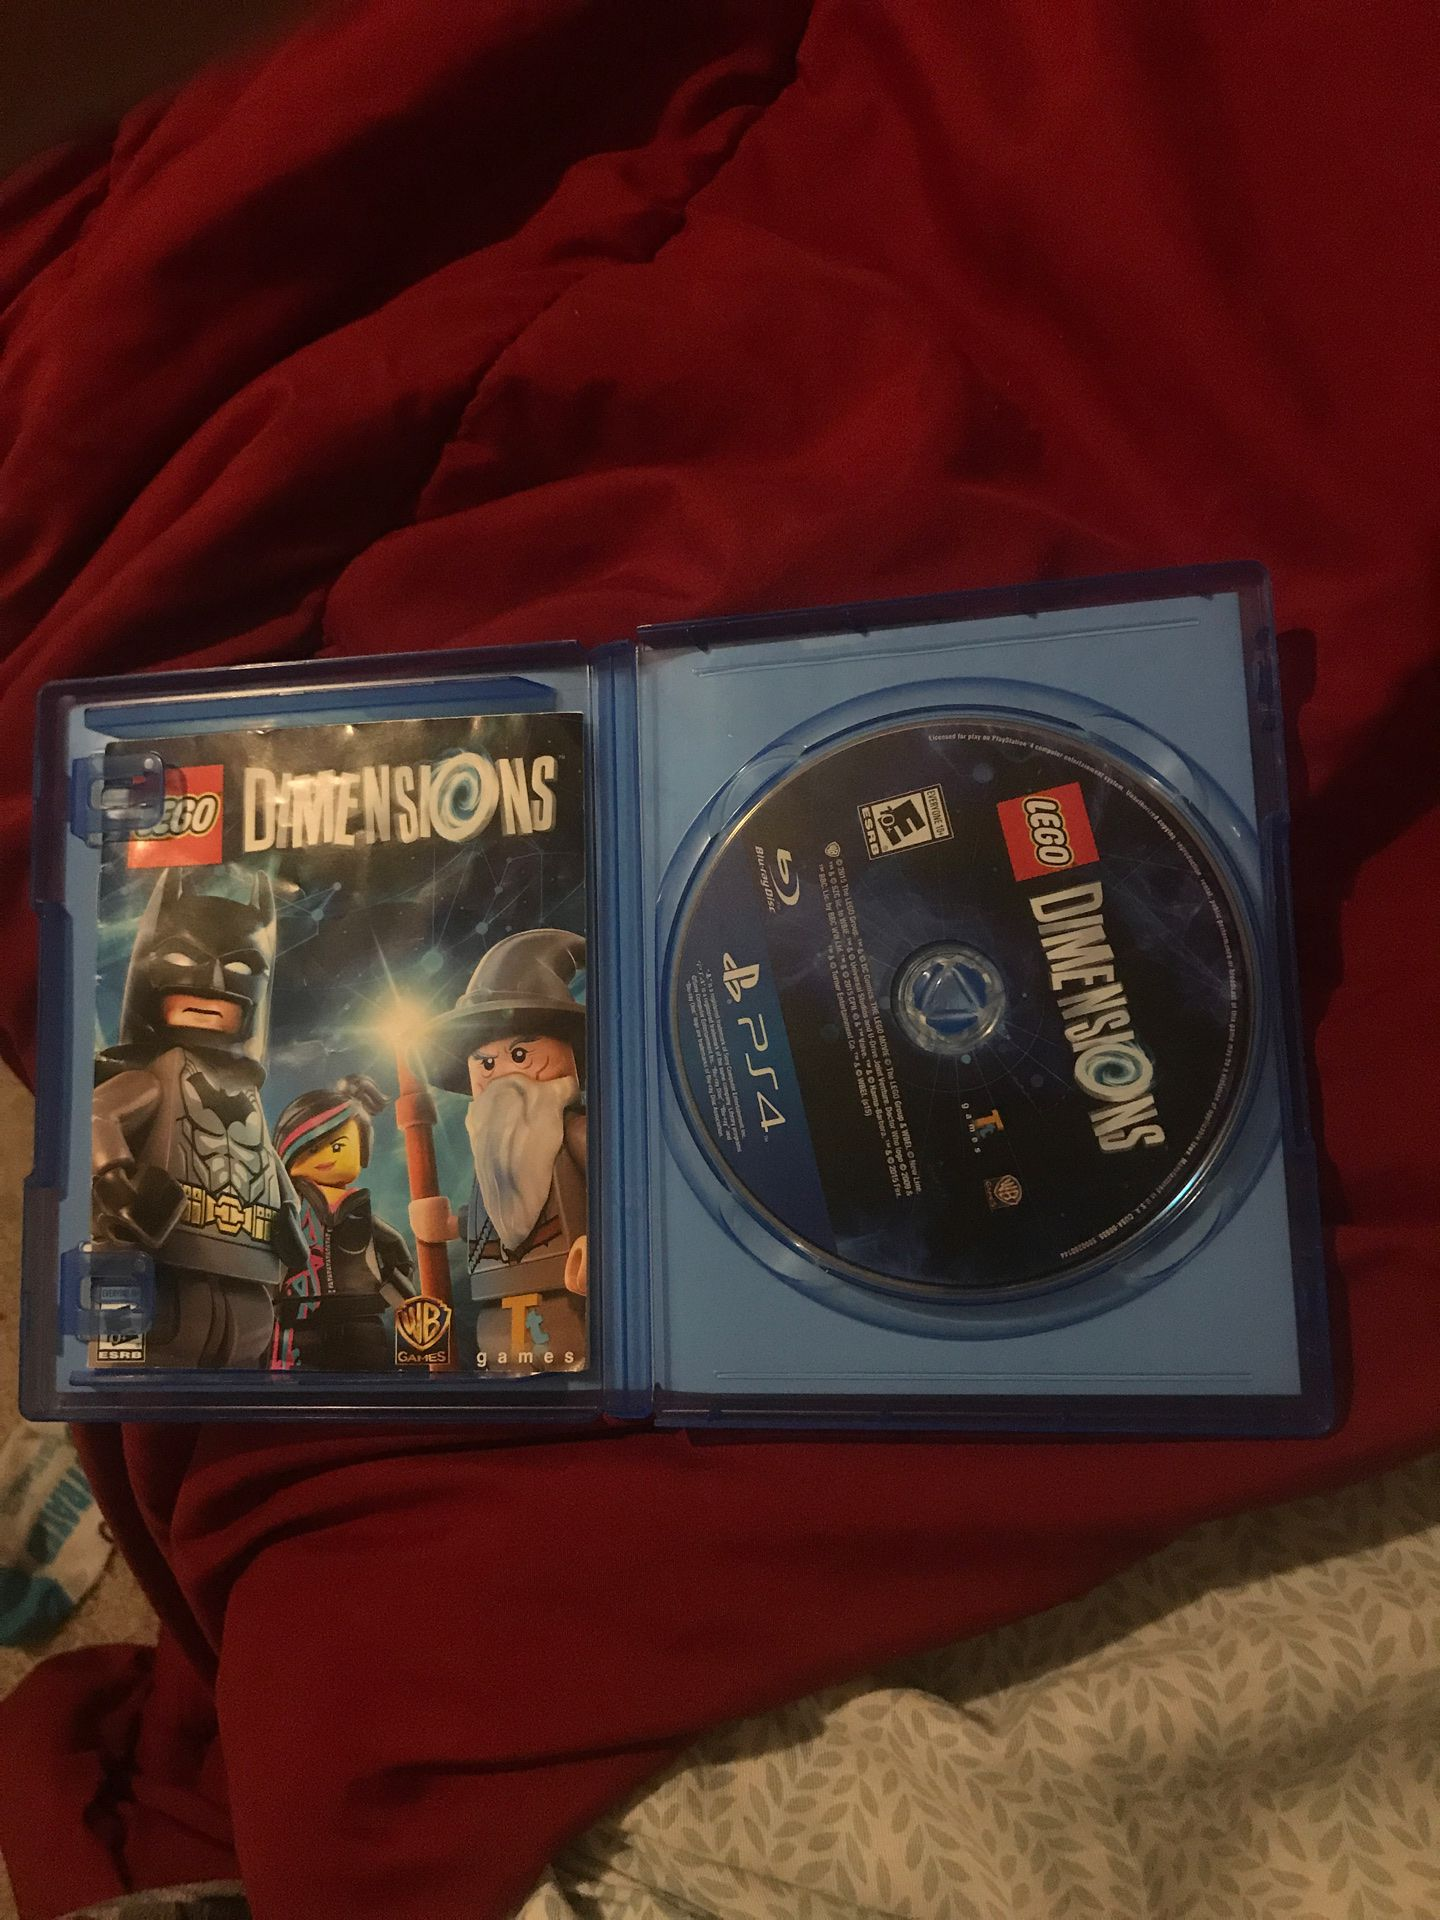 LEGO dimensions cd and case only (other things not included)